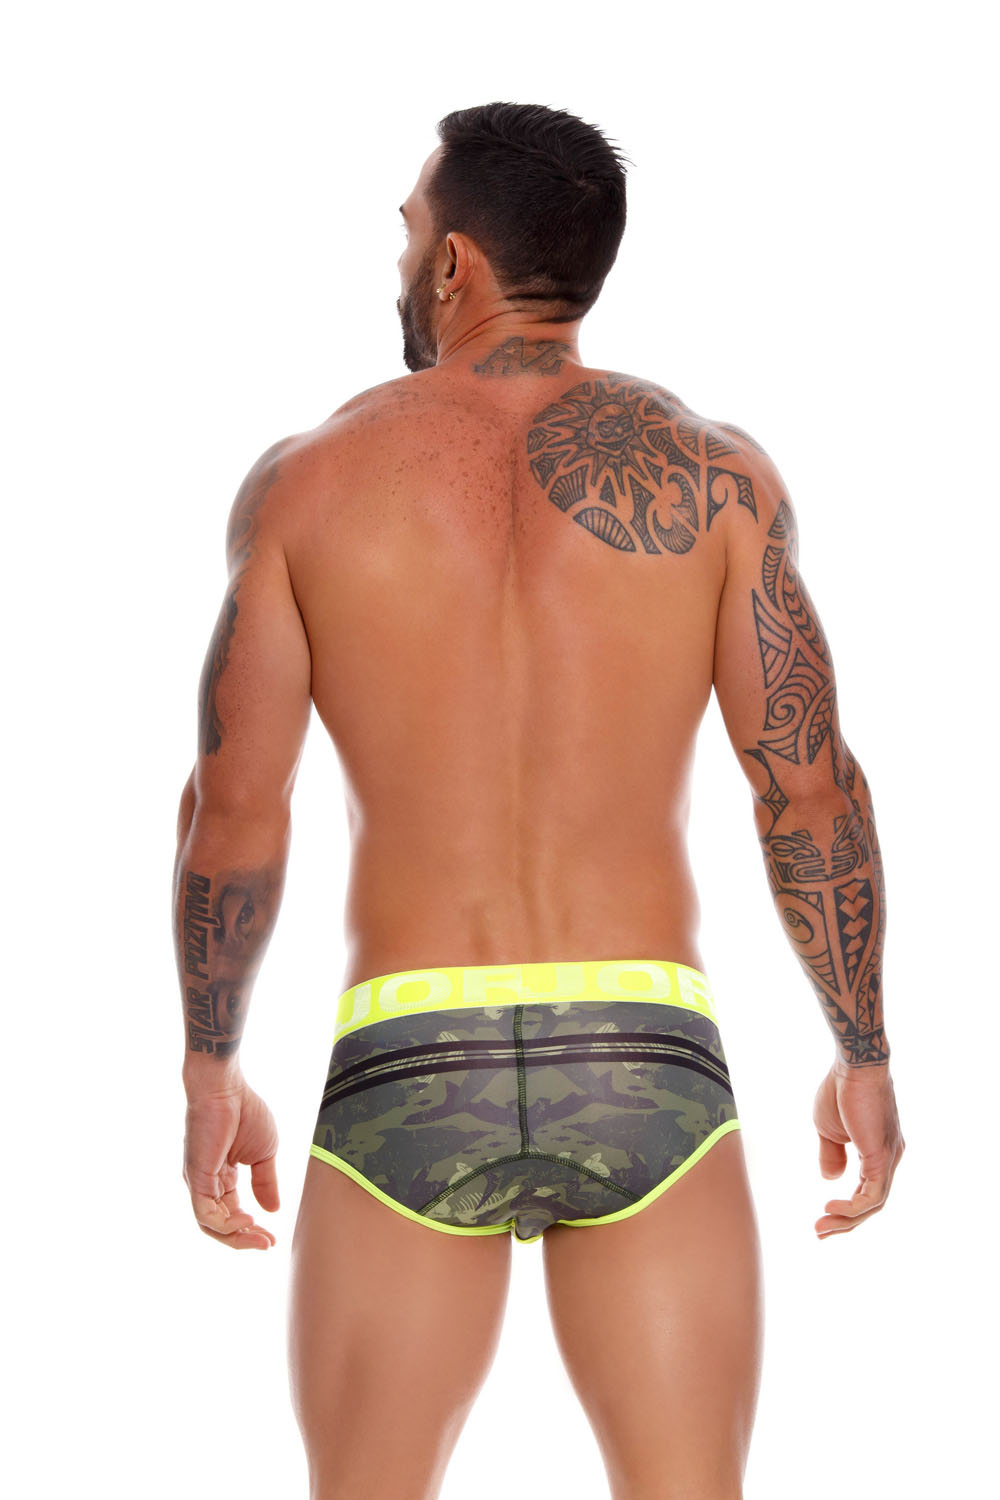 JOR 0980-20.1 printed S Brief Shark